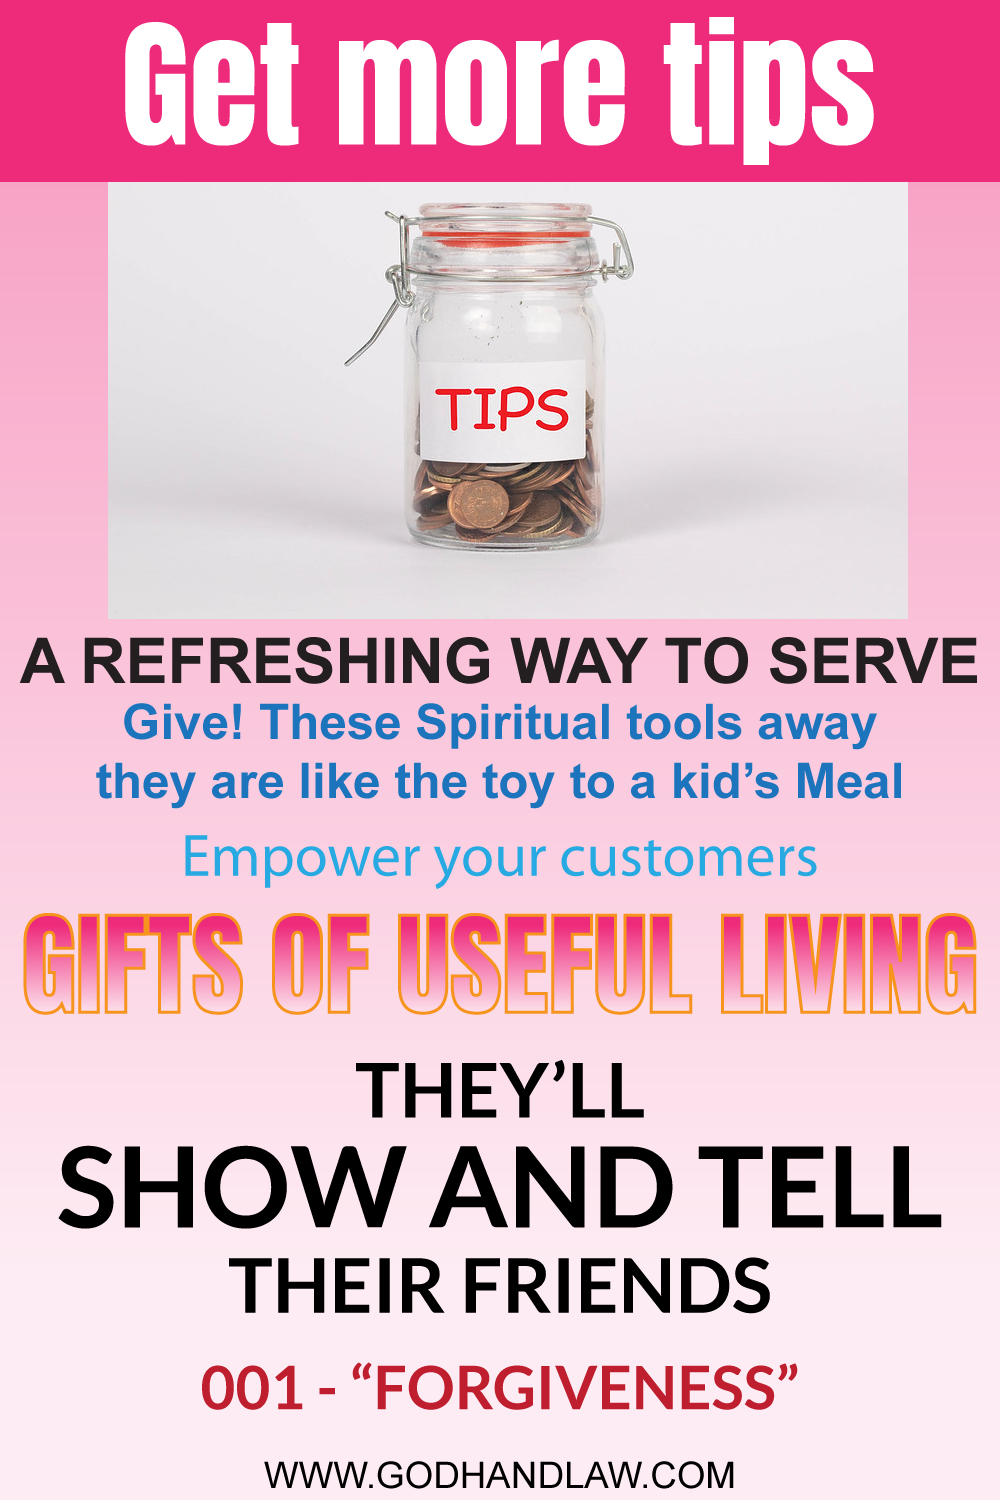 gifts of useful living - 001 - forgivenmess